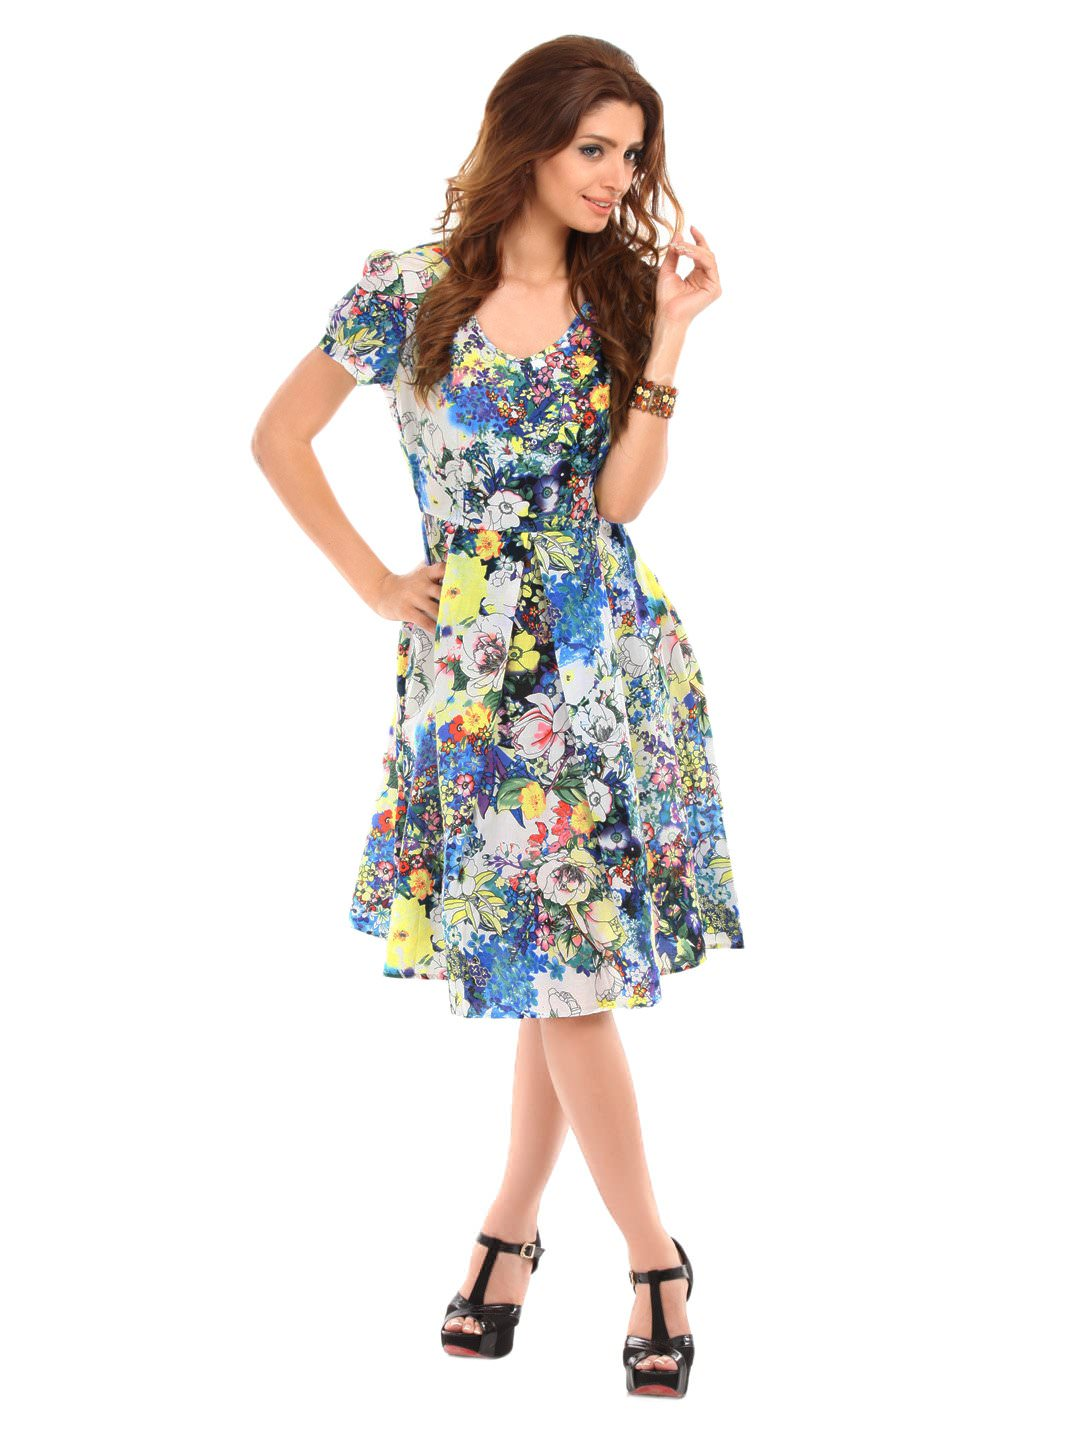 Western Dresses For Women - Laura Williams